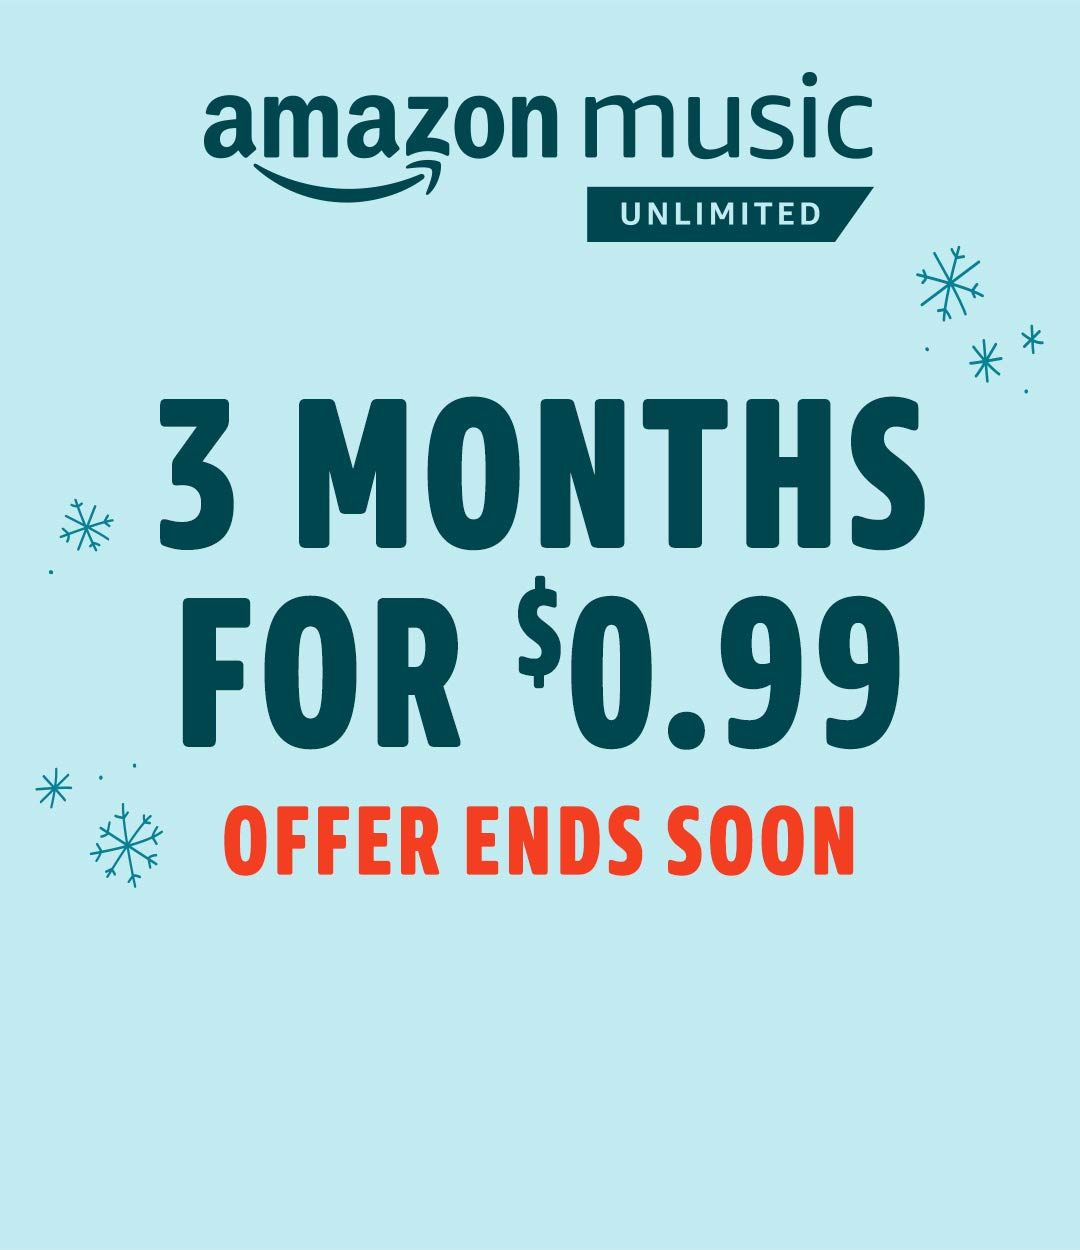 331662a70c7ea3 Amazon Music Unlimited. 3 months for $0.99. Limited time offer. Unlock  access to 50 million songs. Just $7.99 a month for Prime Members.